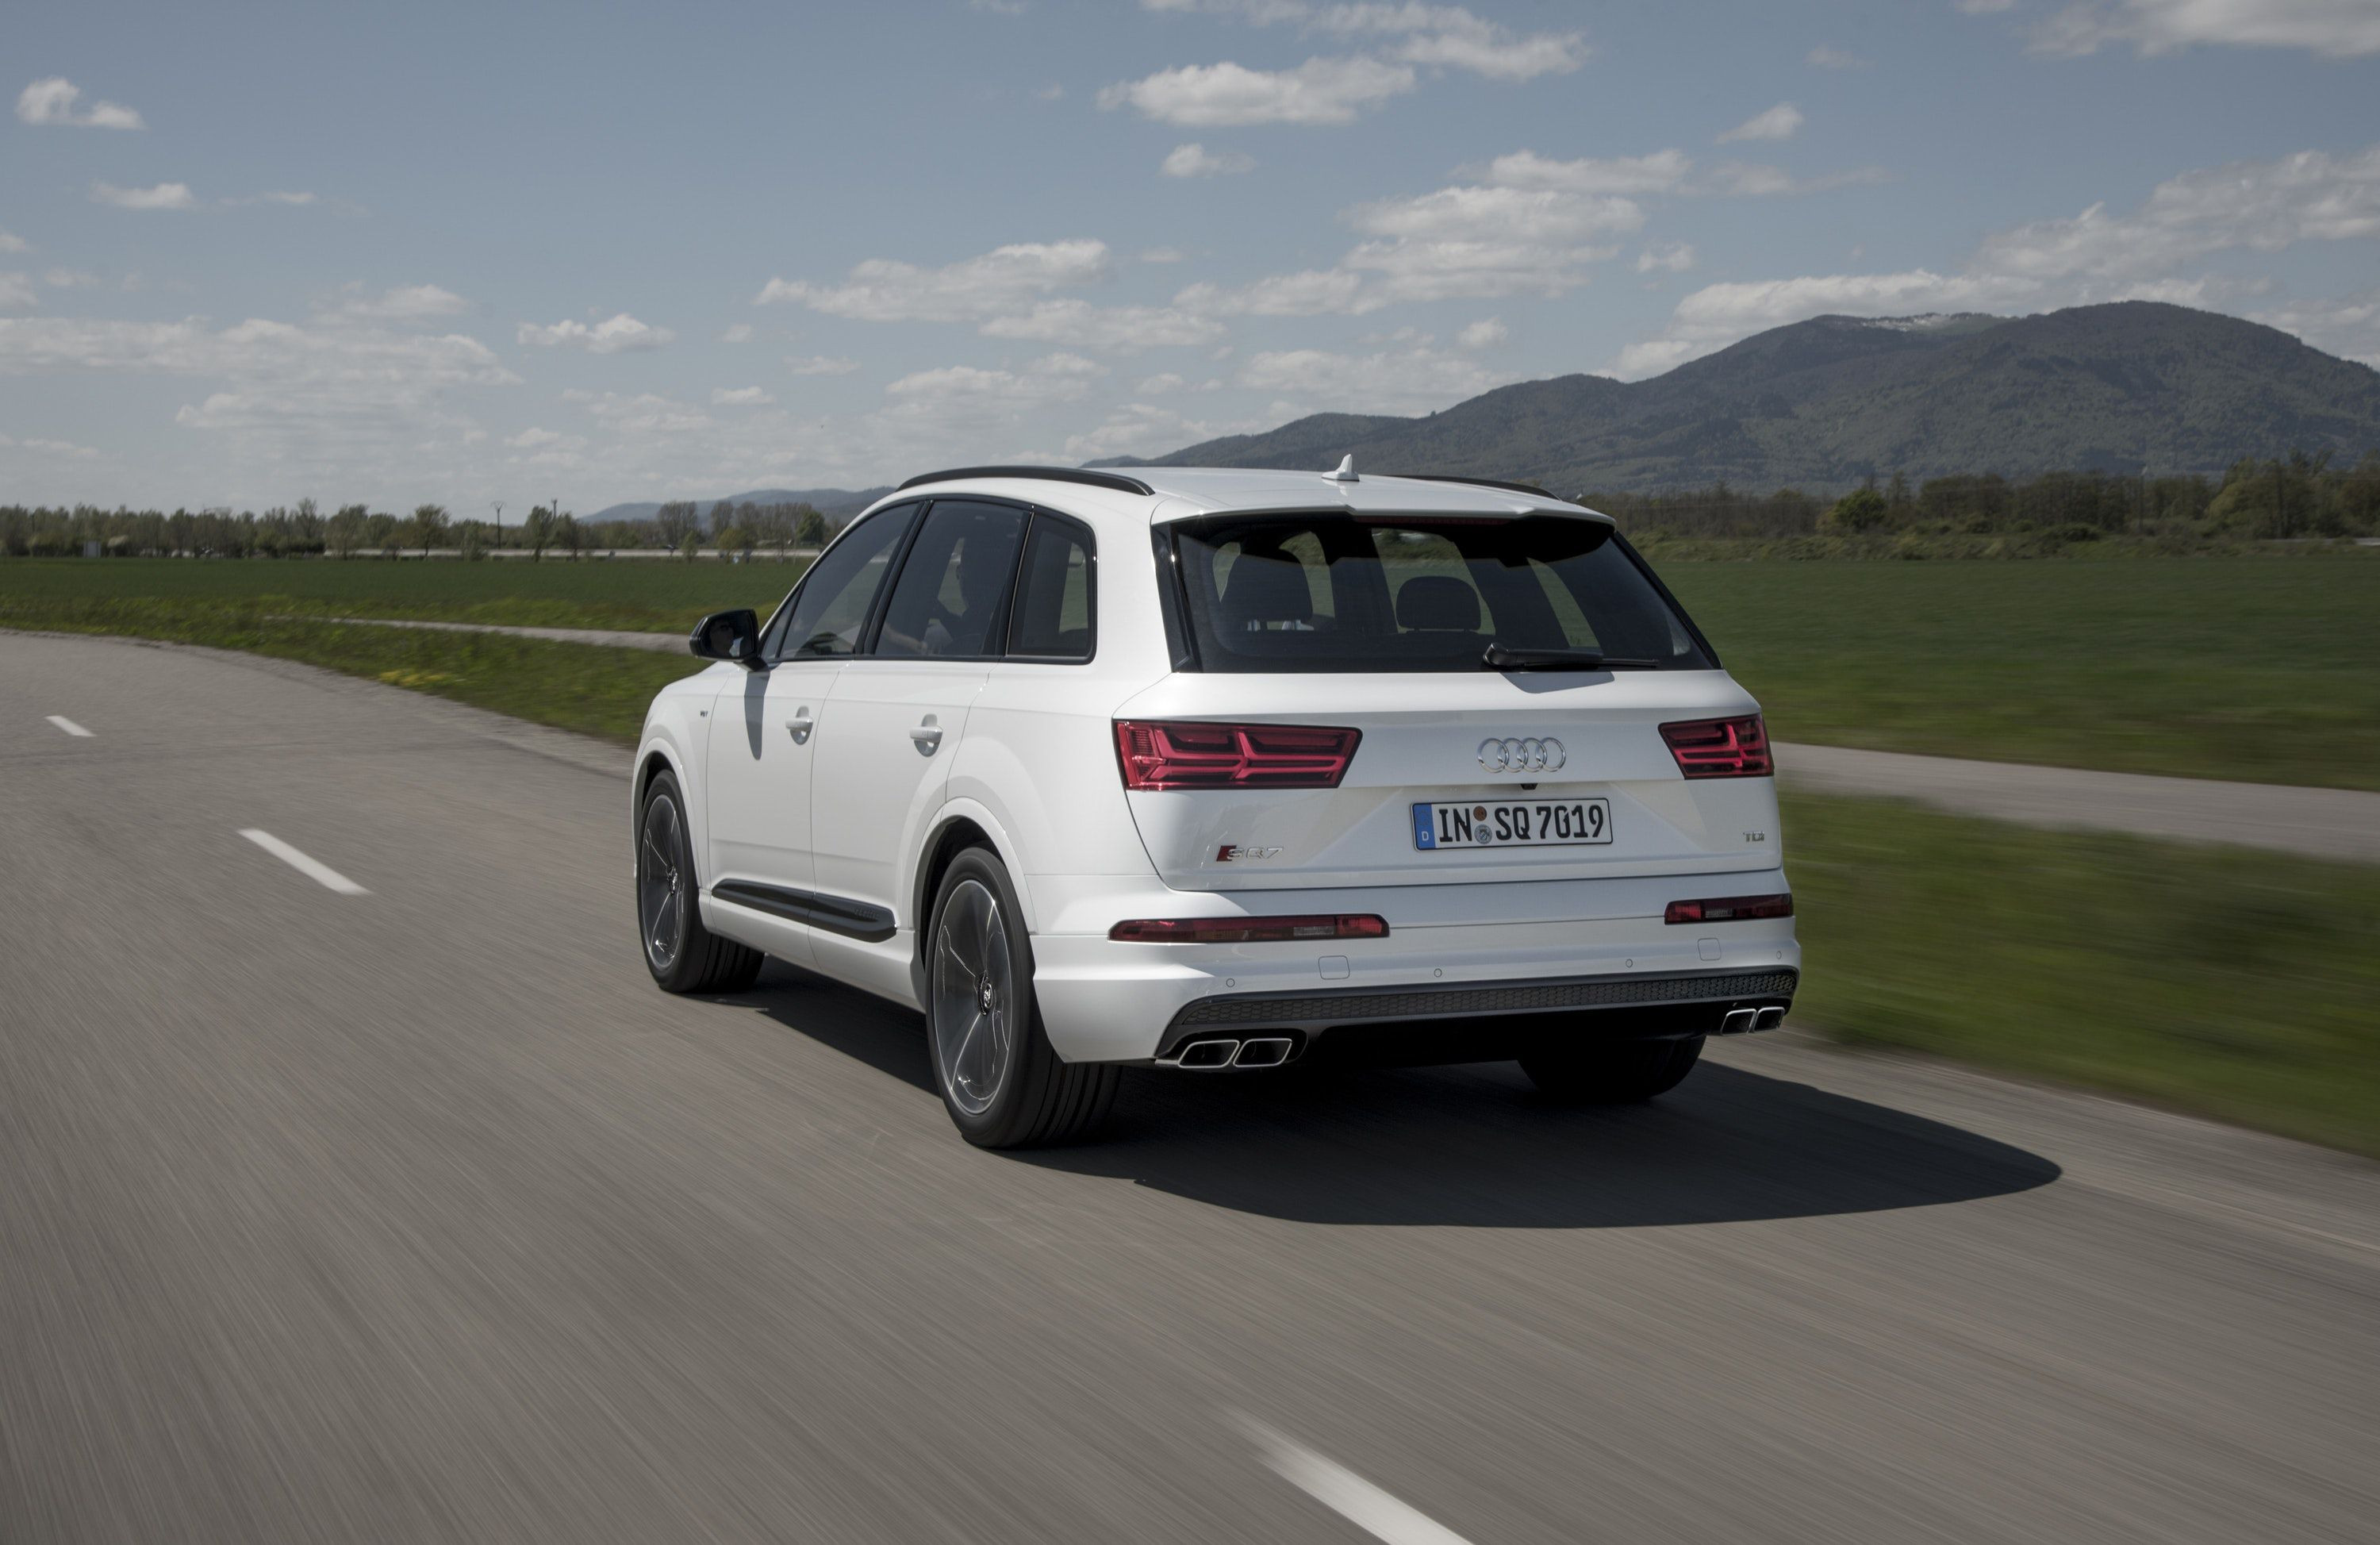 Rear view of Audi SQ7